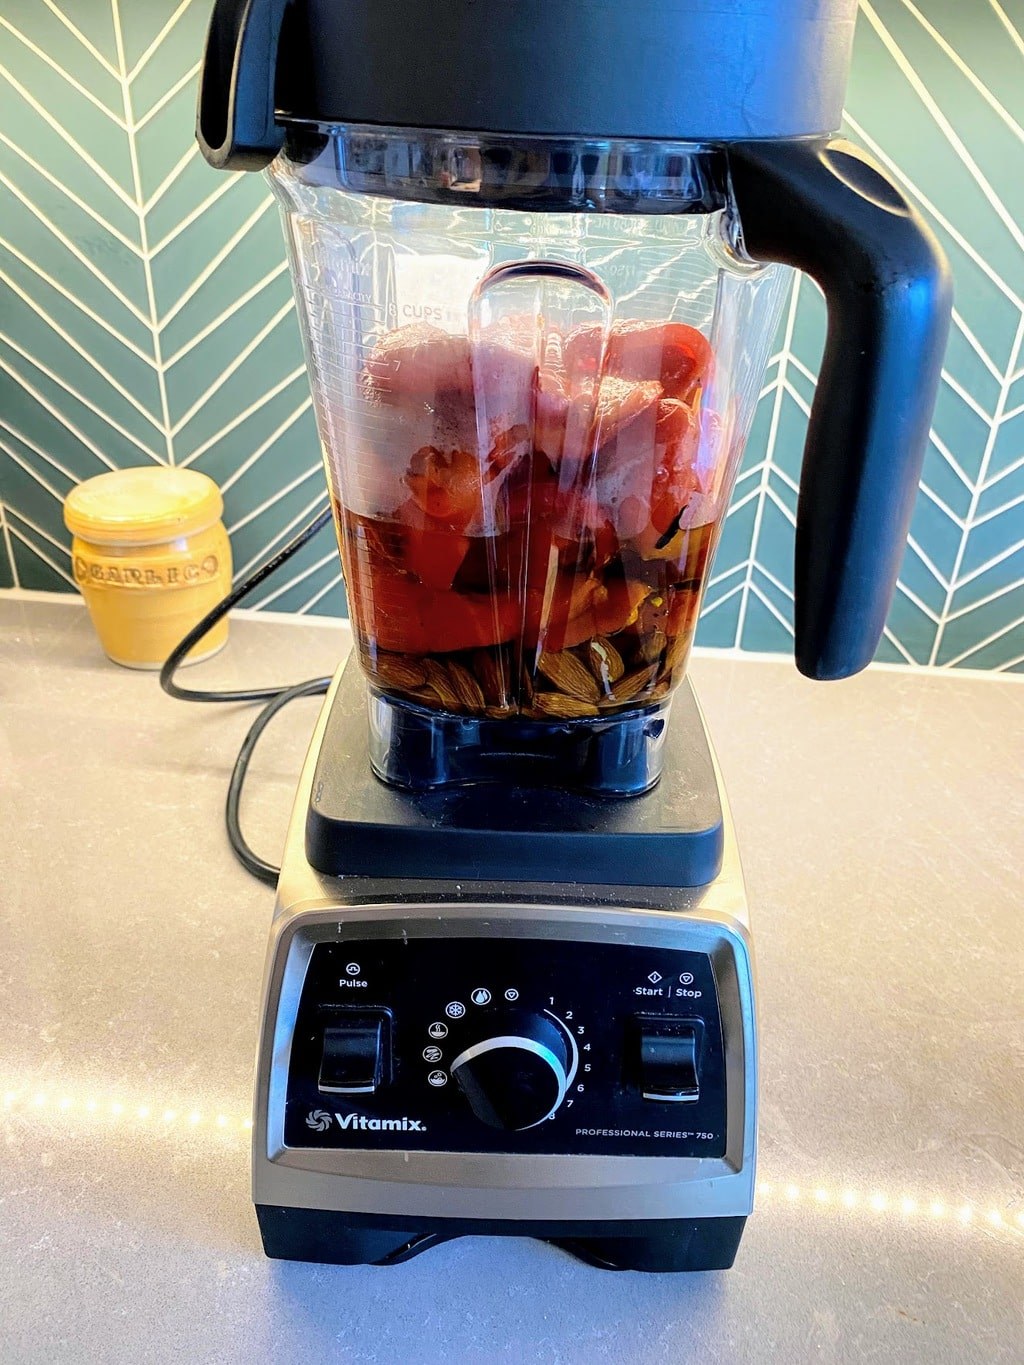 Vitamix filled with romesco ingredients, ready to blend